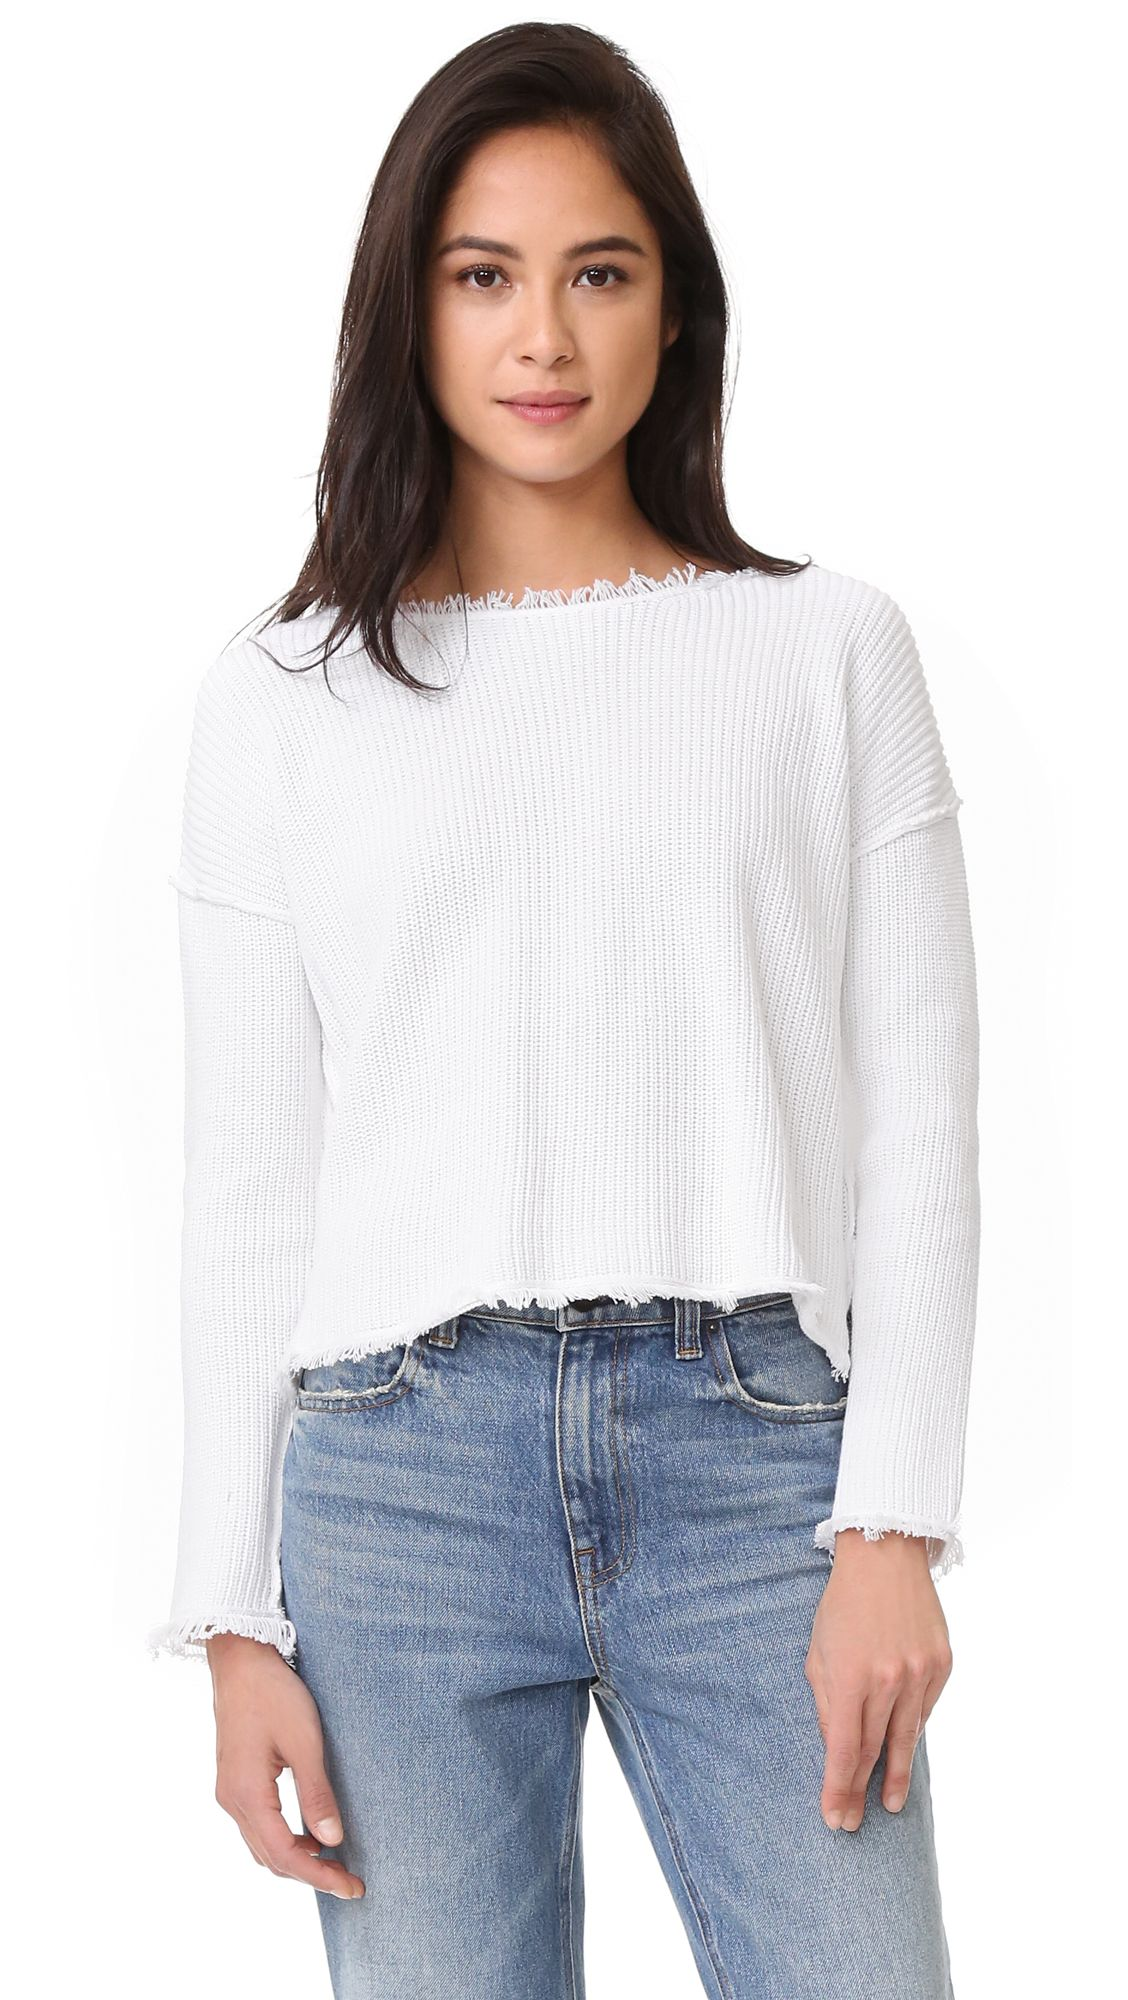 Cómpralo ya!. 525 America Cropped Sweater - Bleach White. This ...